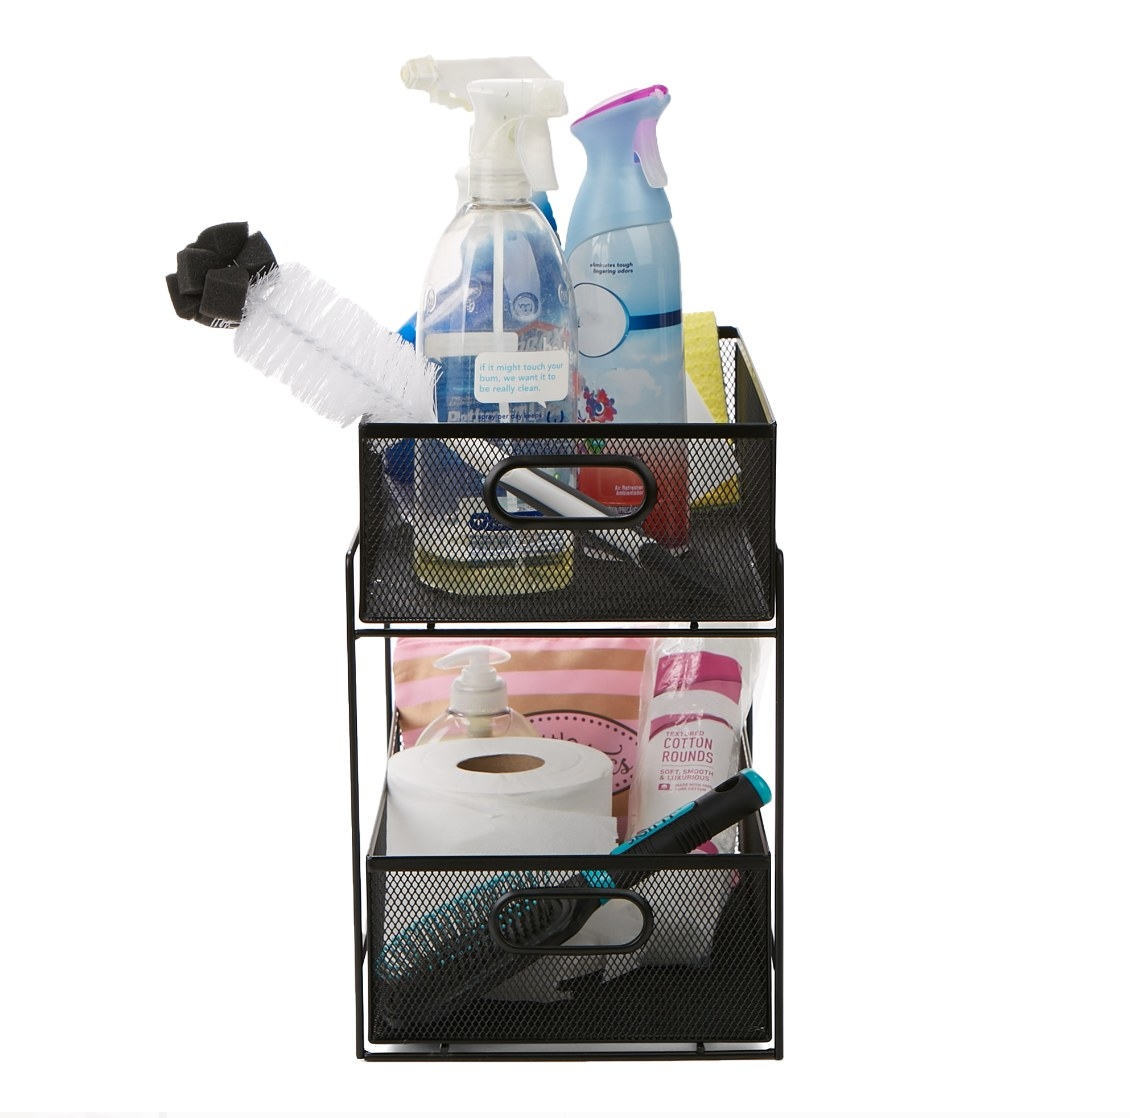 The drawer organizer being used to hold cleaning supplies